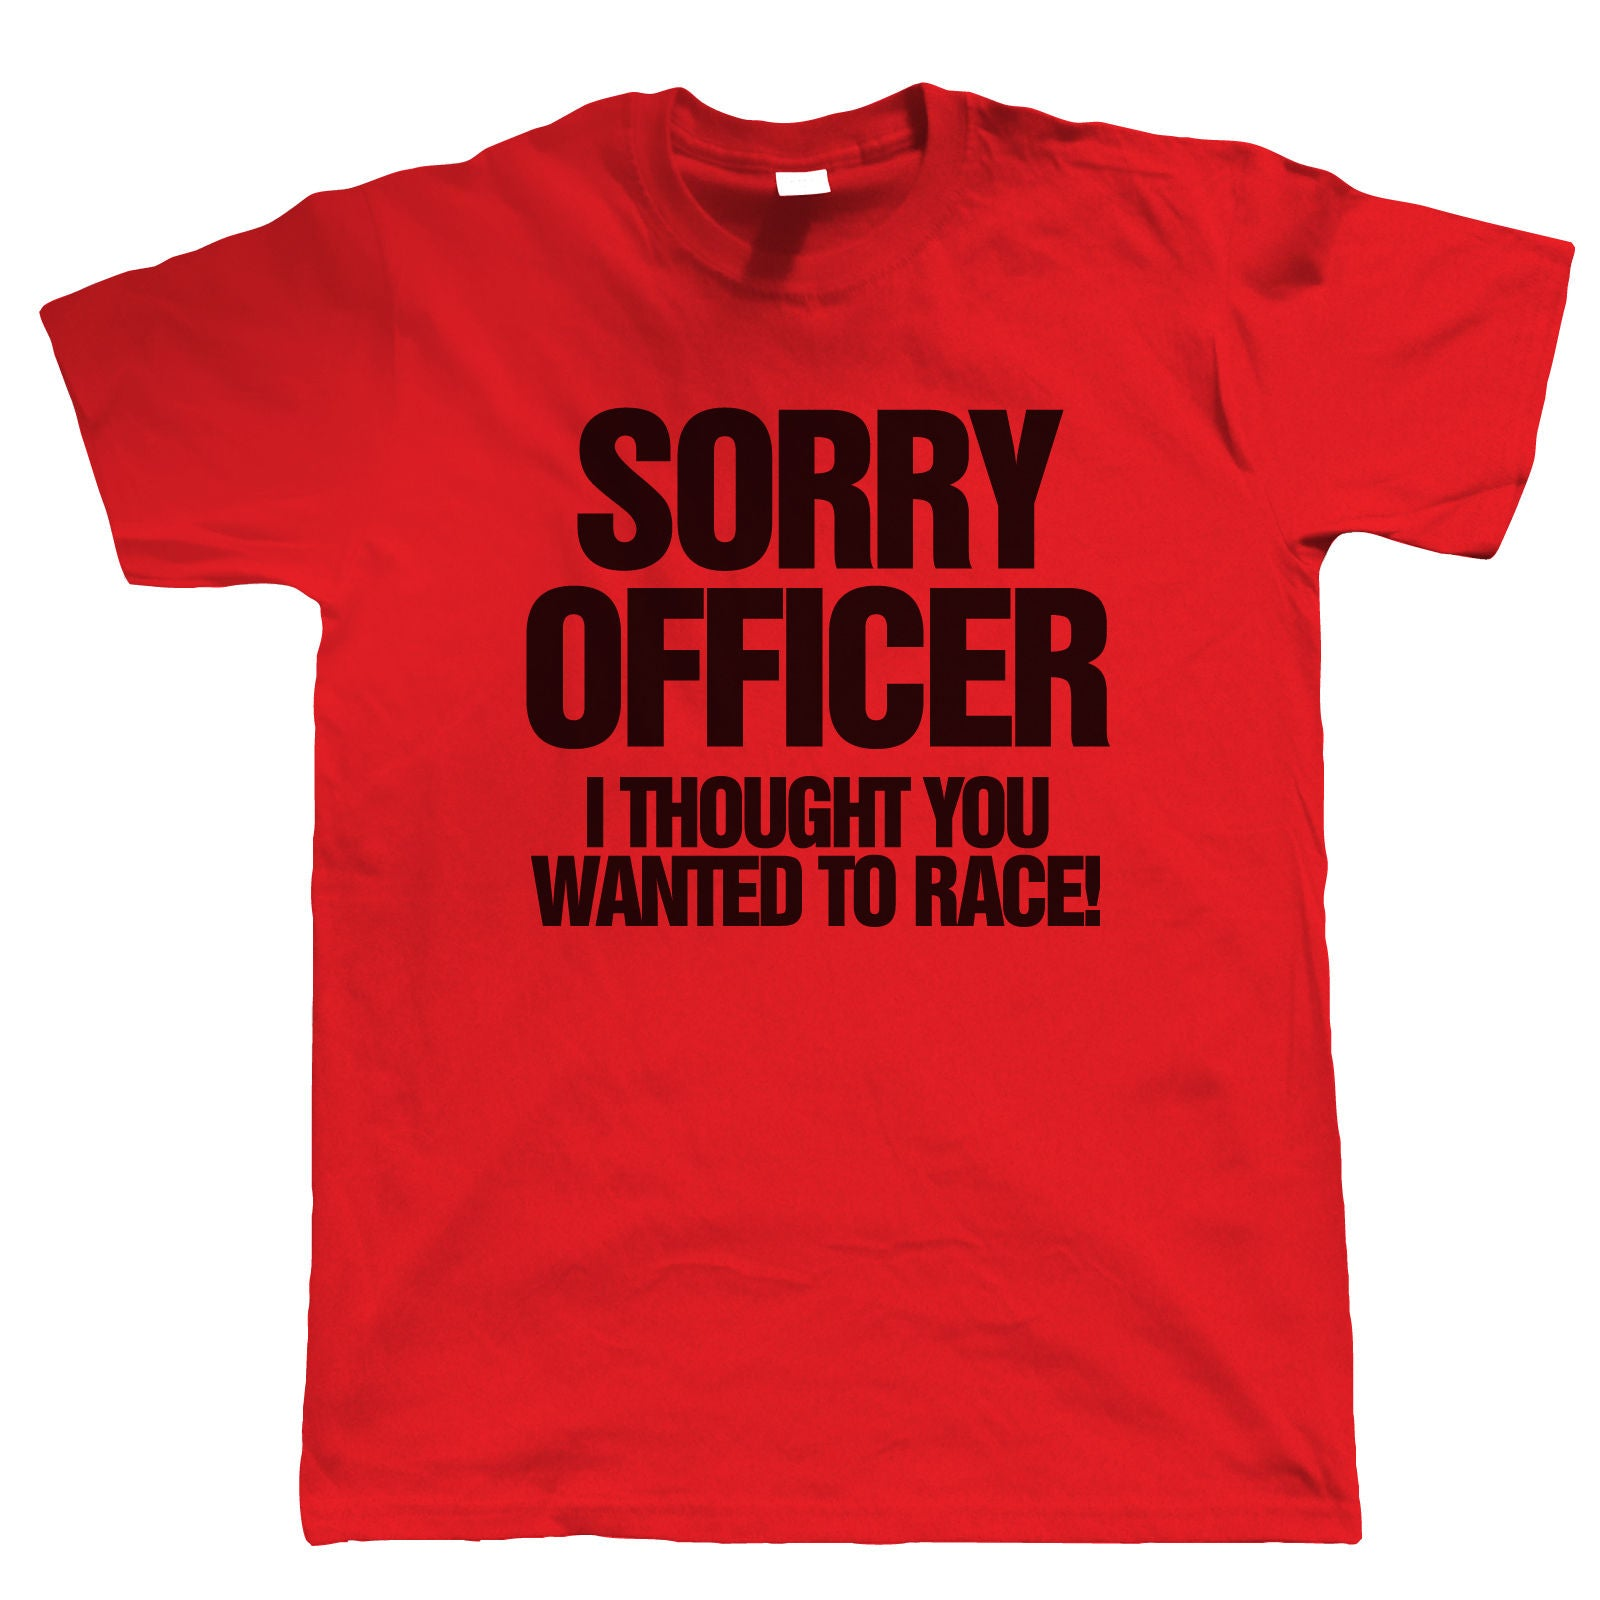 Sorry Officer, Mens Funny Biker T Shirt | Motorbike Enthusiast Motorcycle Club Chopper Cafe Racer Superbike Gentleman Biker | Cool Birthday Christmas Gift Present Him Dad Husband Son